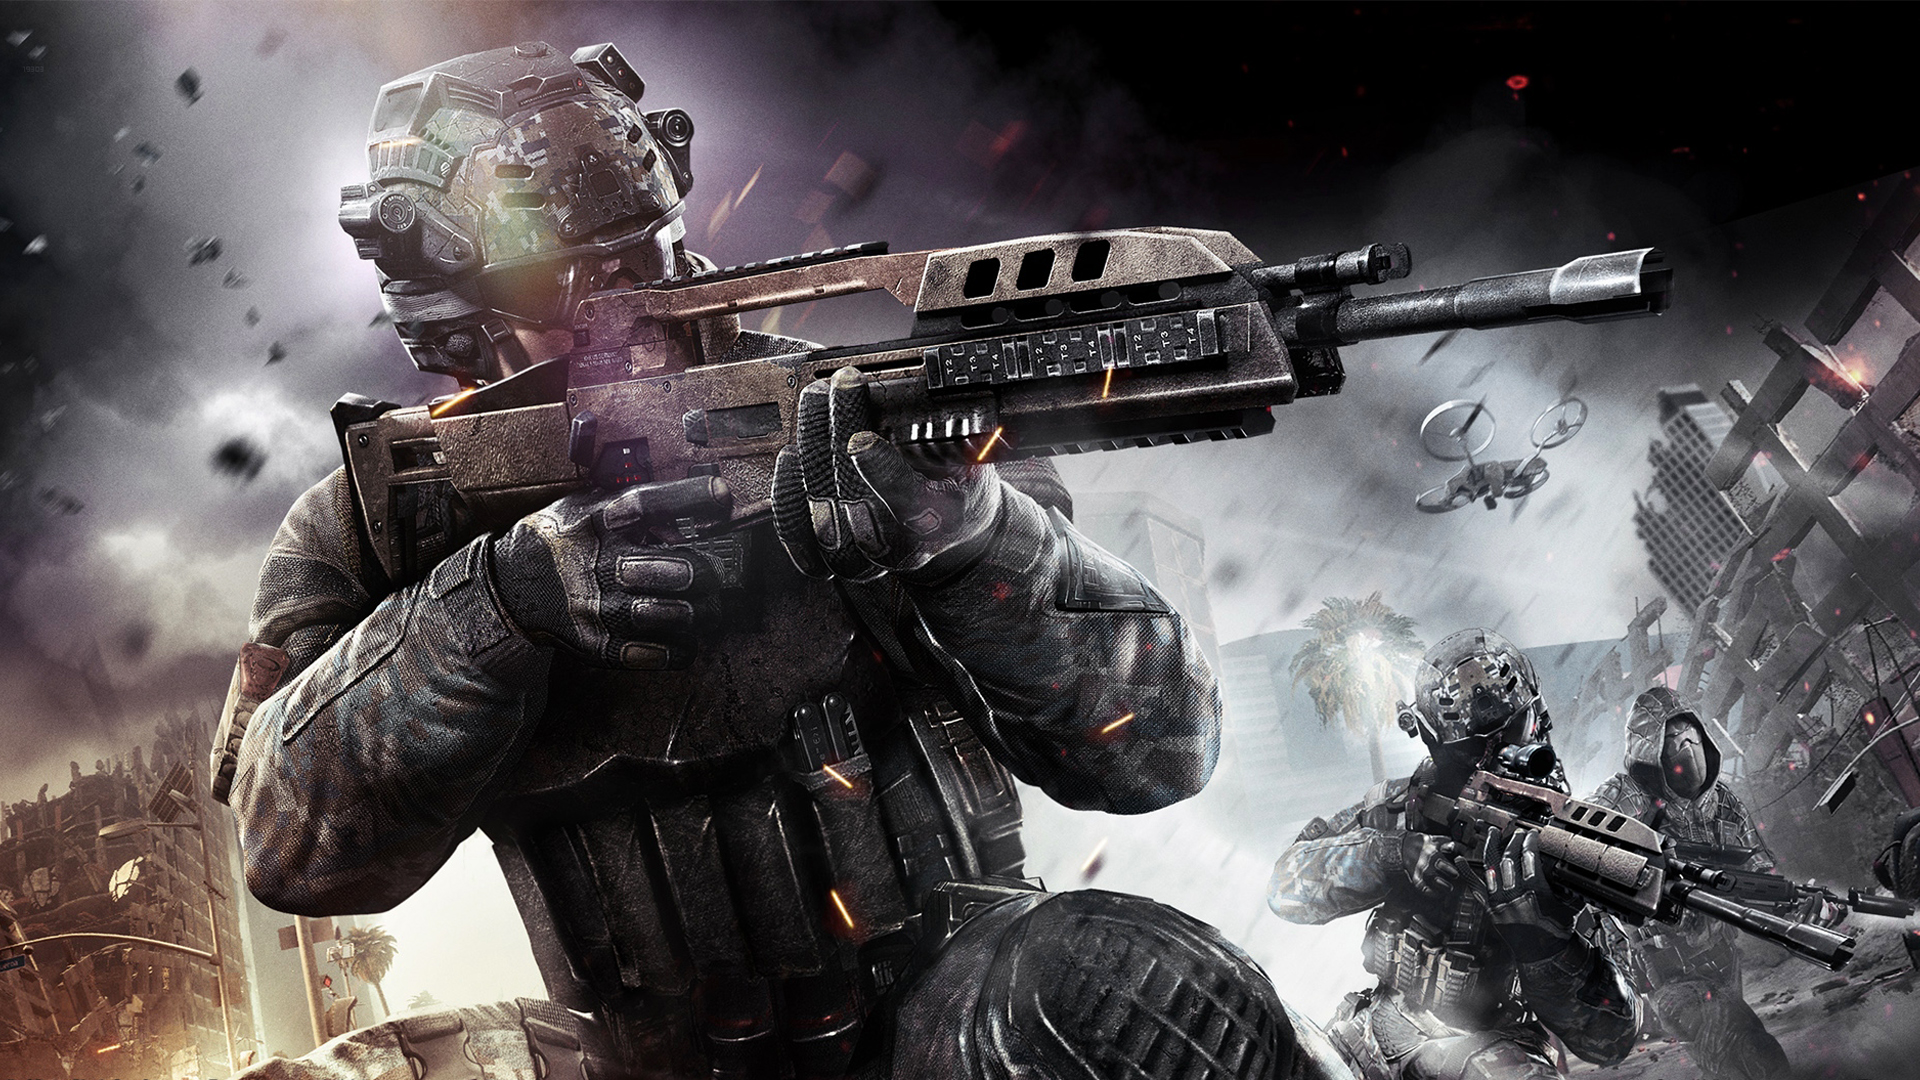 CALL-Of-DUTY-Advanced-Warfare-tactical-shooter-stealth-action-wallpaper-wp3403632